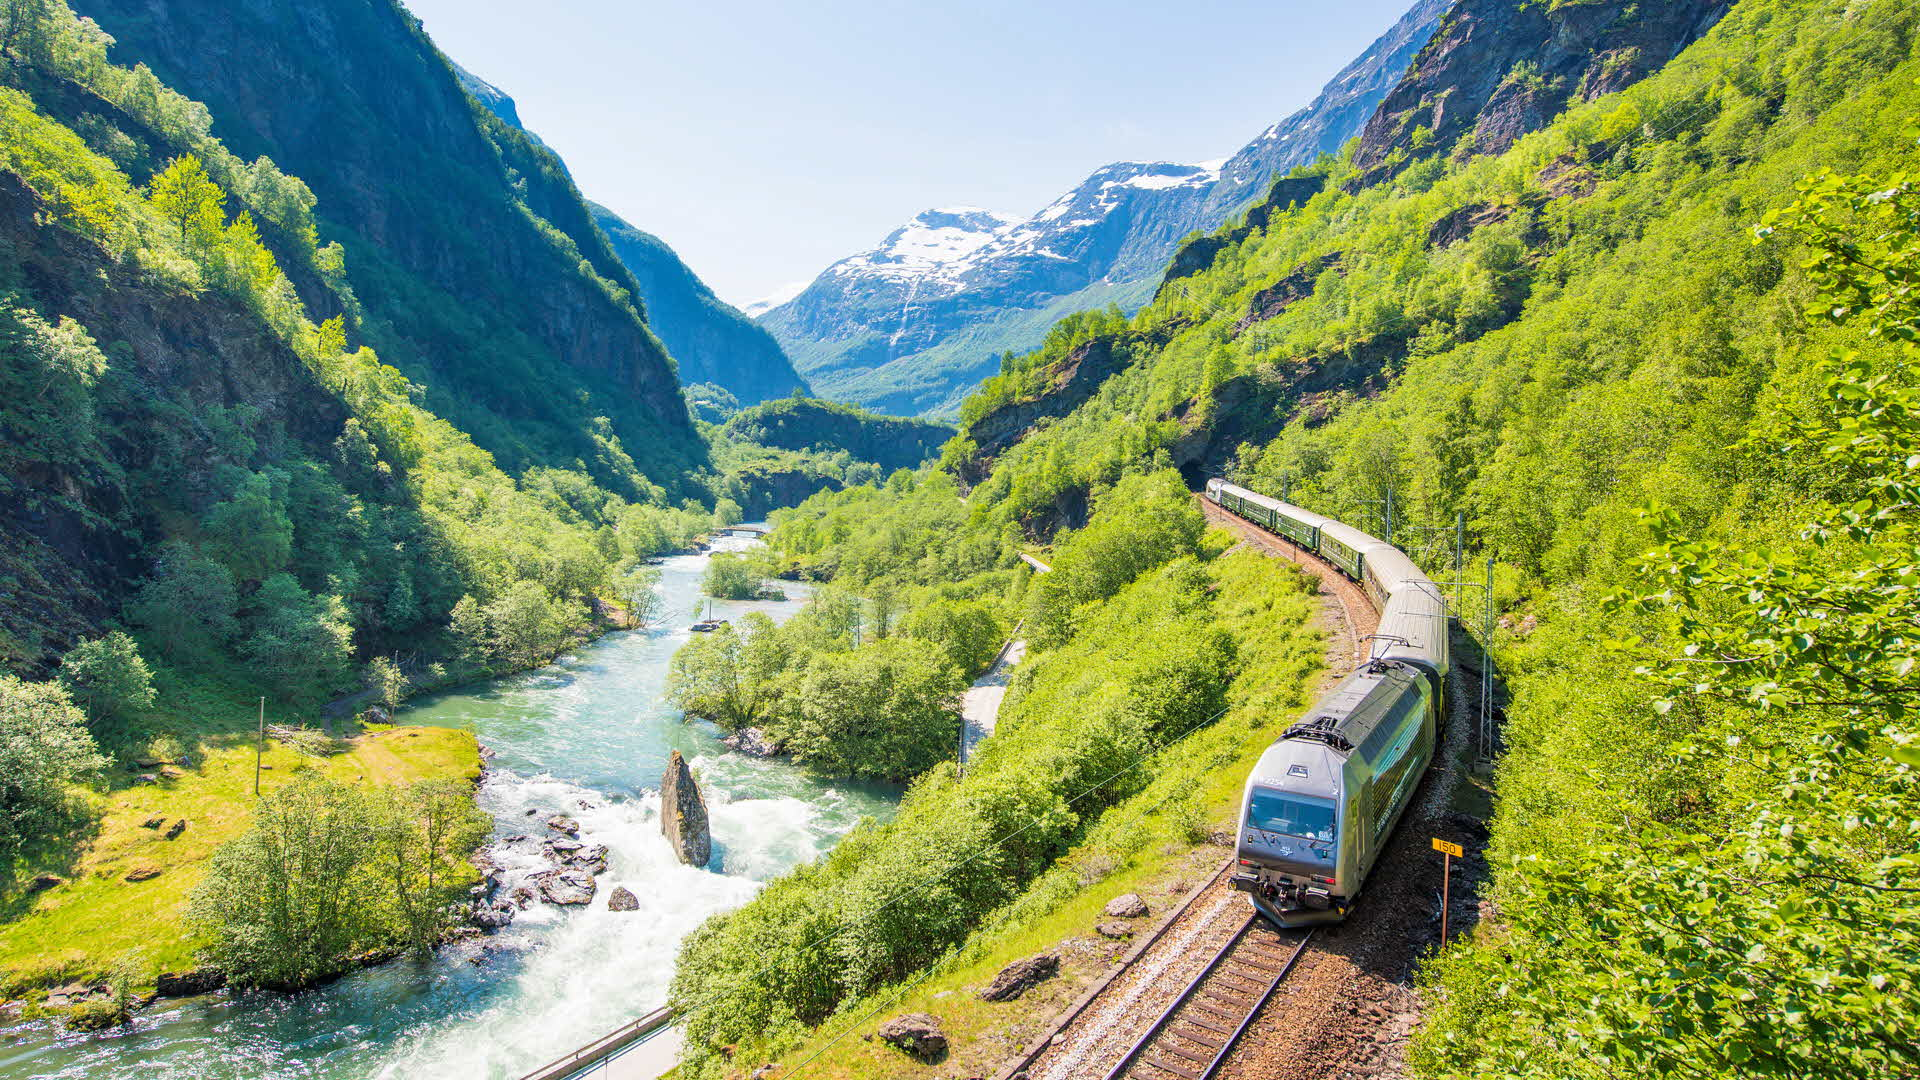 The Flåm Railway passing through the fertile Flåmsdalen Valley next to the rushing river on a sunny day, white mountain peaks in the background